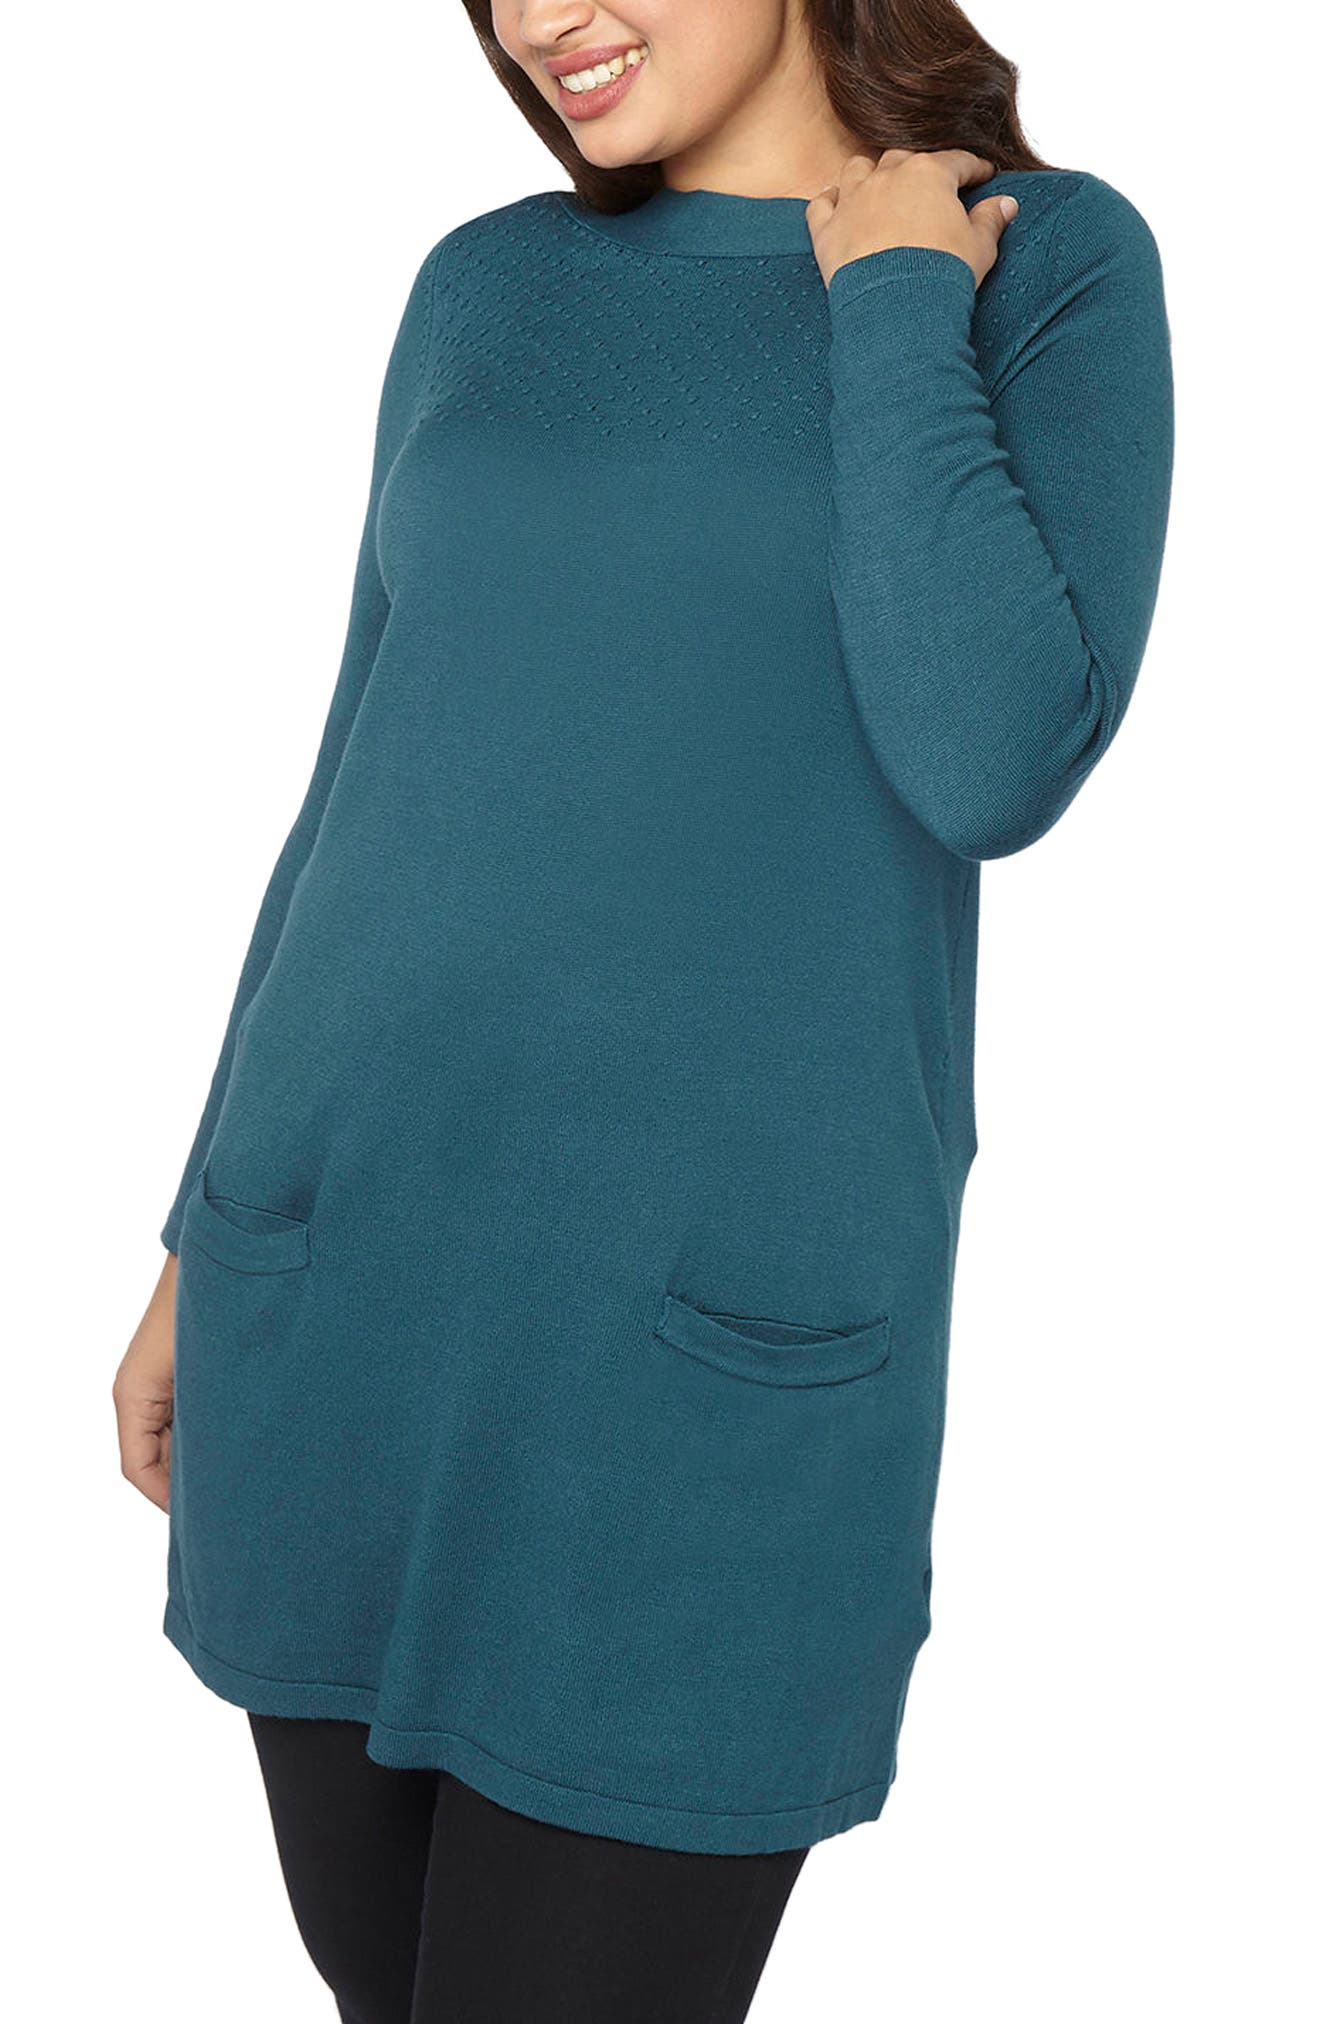 Alternate Image 1 Selected - Evans Front Pocket Textured Tunic Sweater (Plus Size)